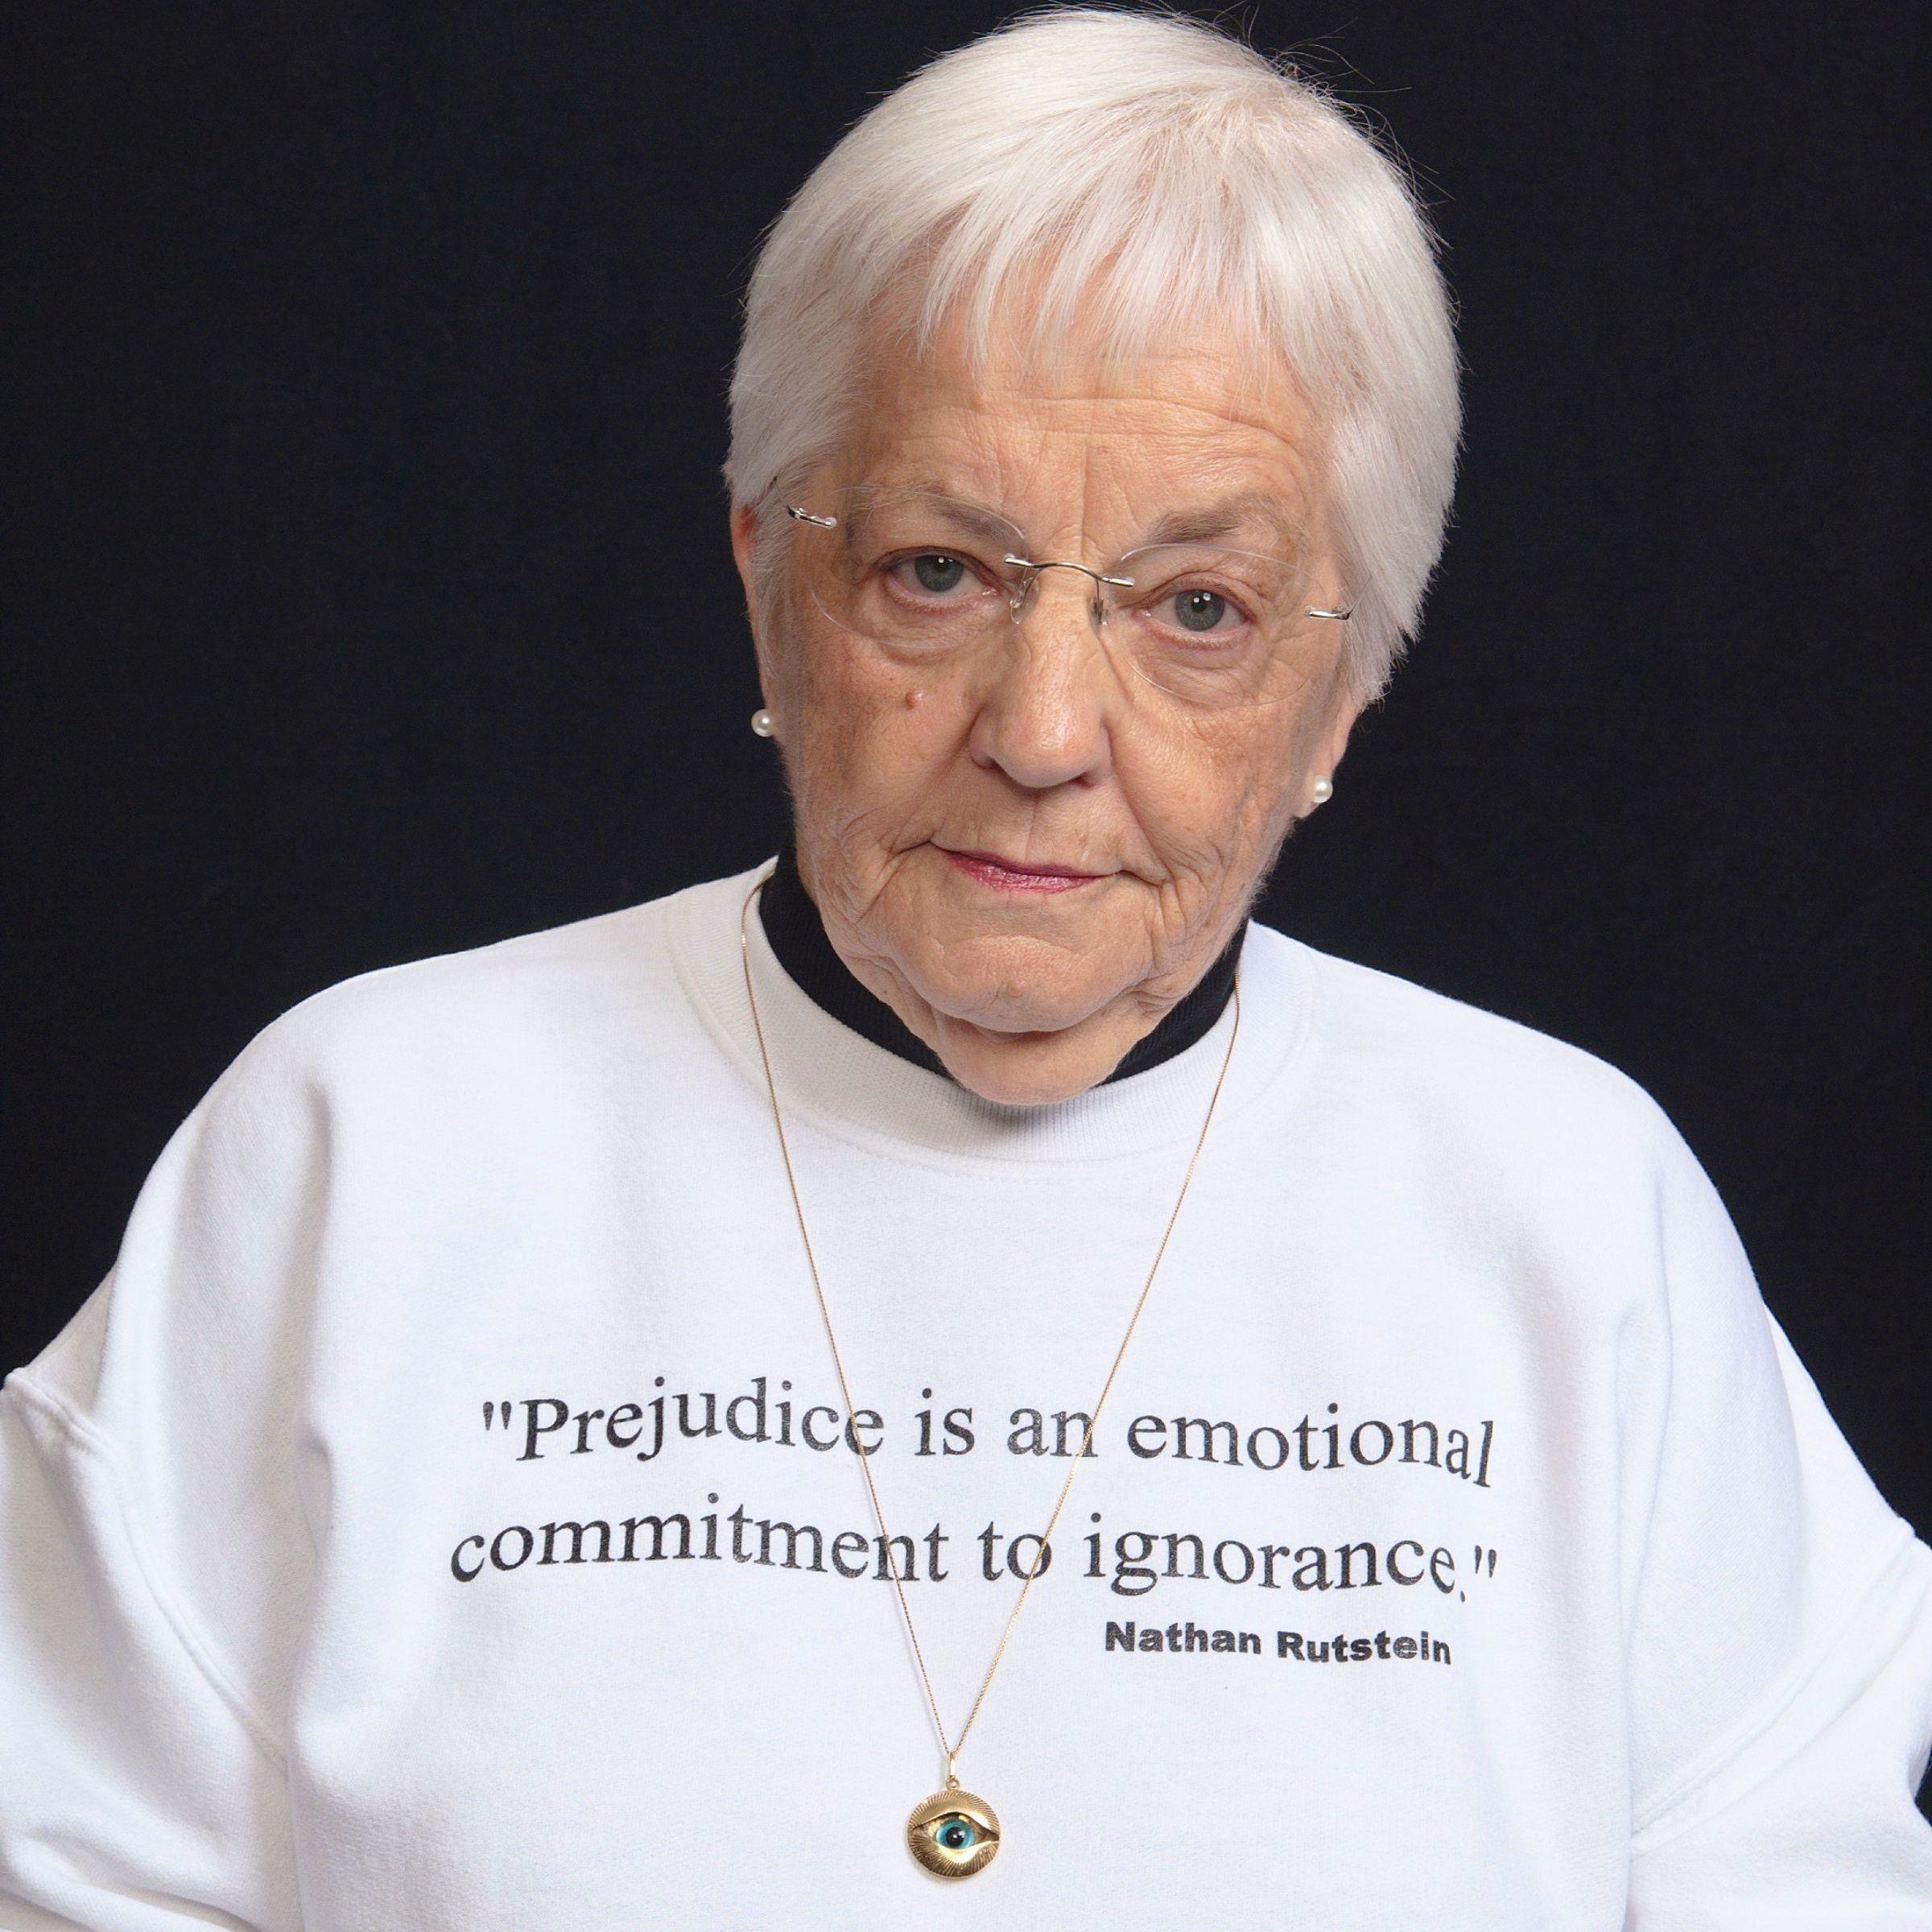 Episode 110 - Jane Elliott (The Curiosity Hour Podcast by Dan Sterenchuk and Tommy Estlund)